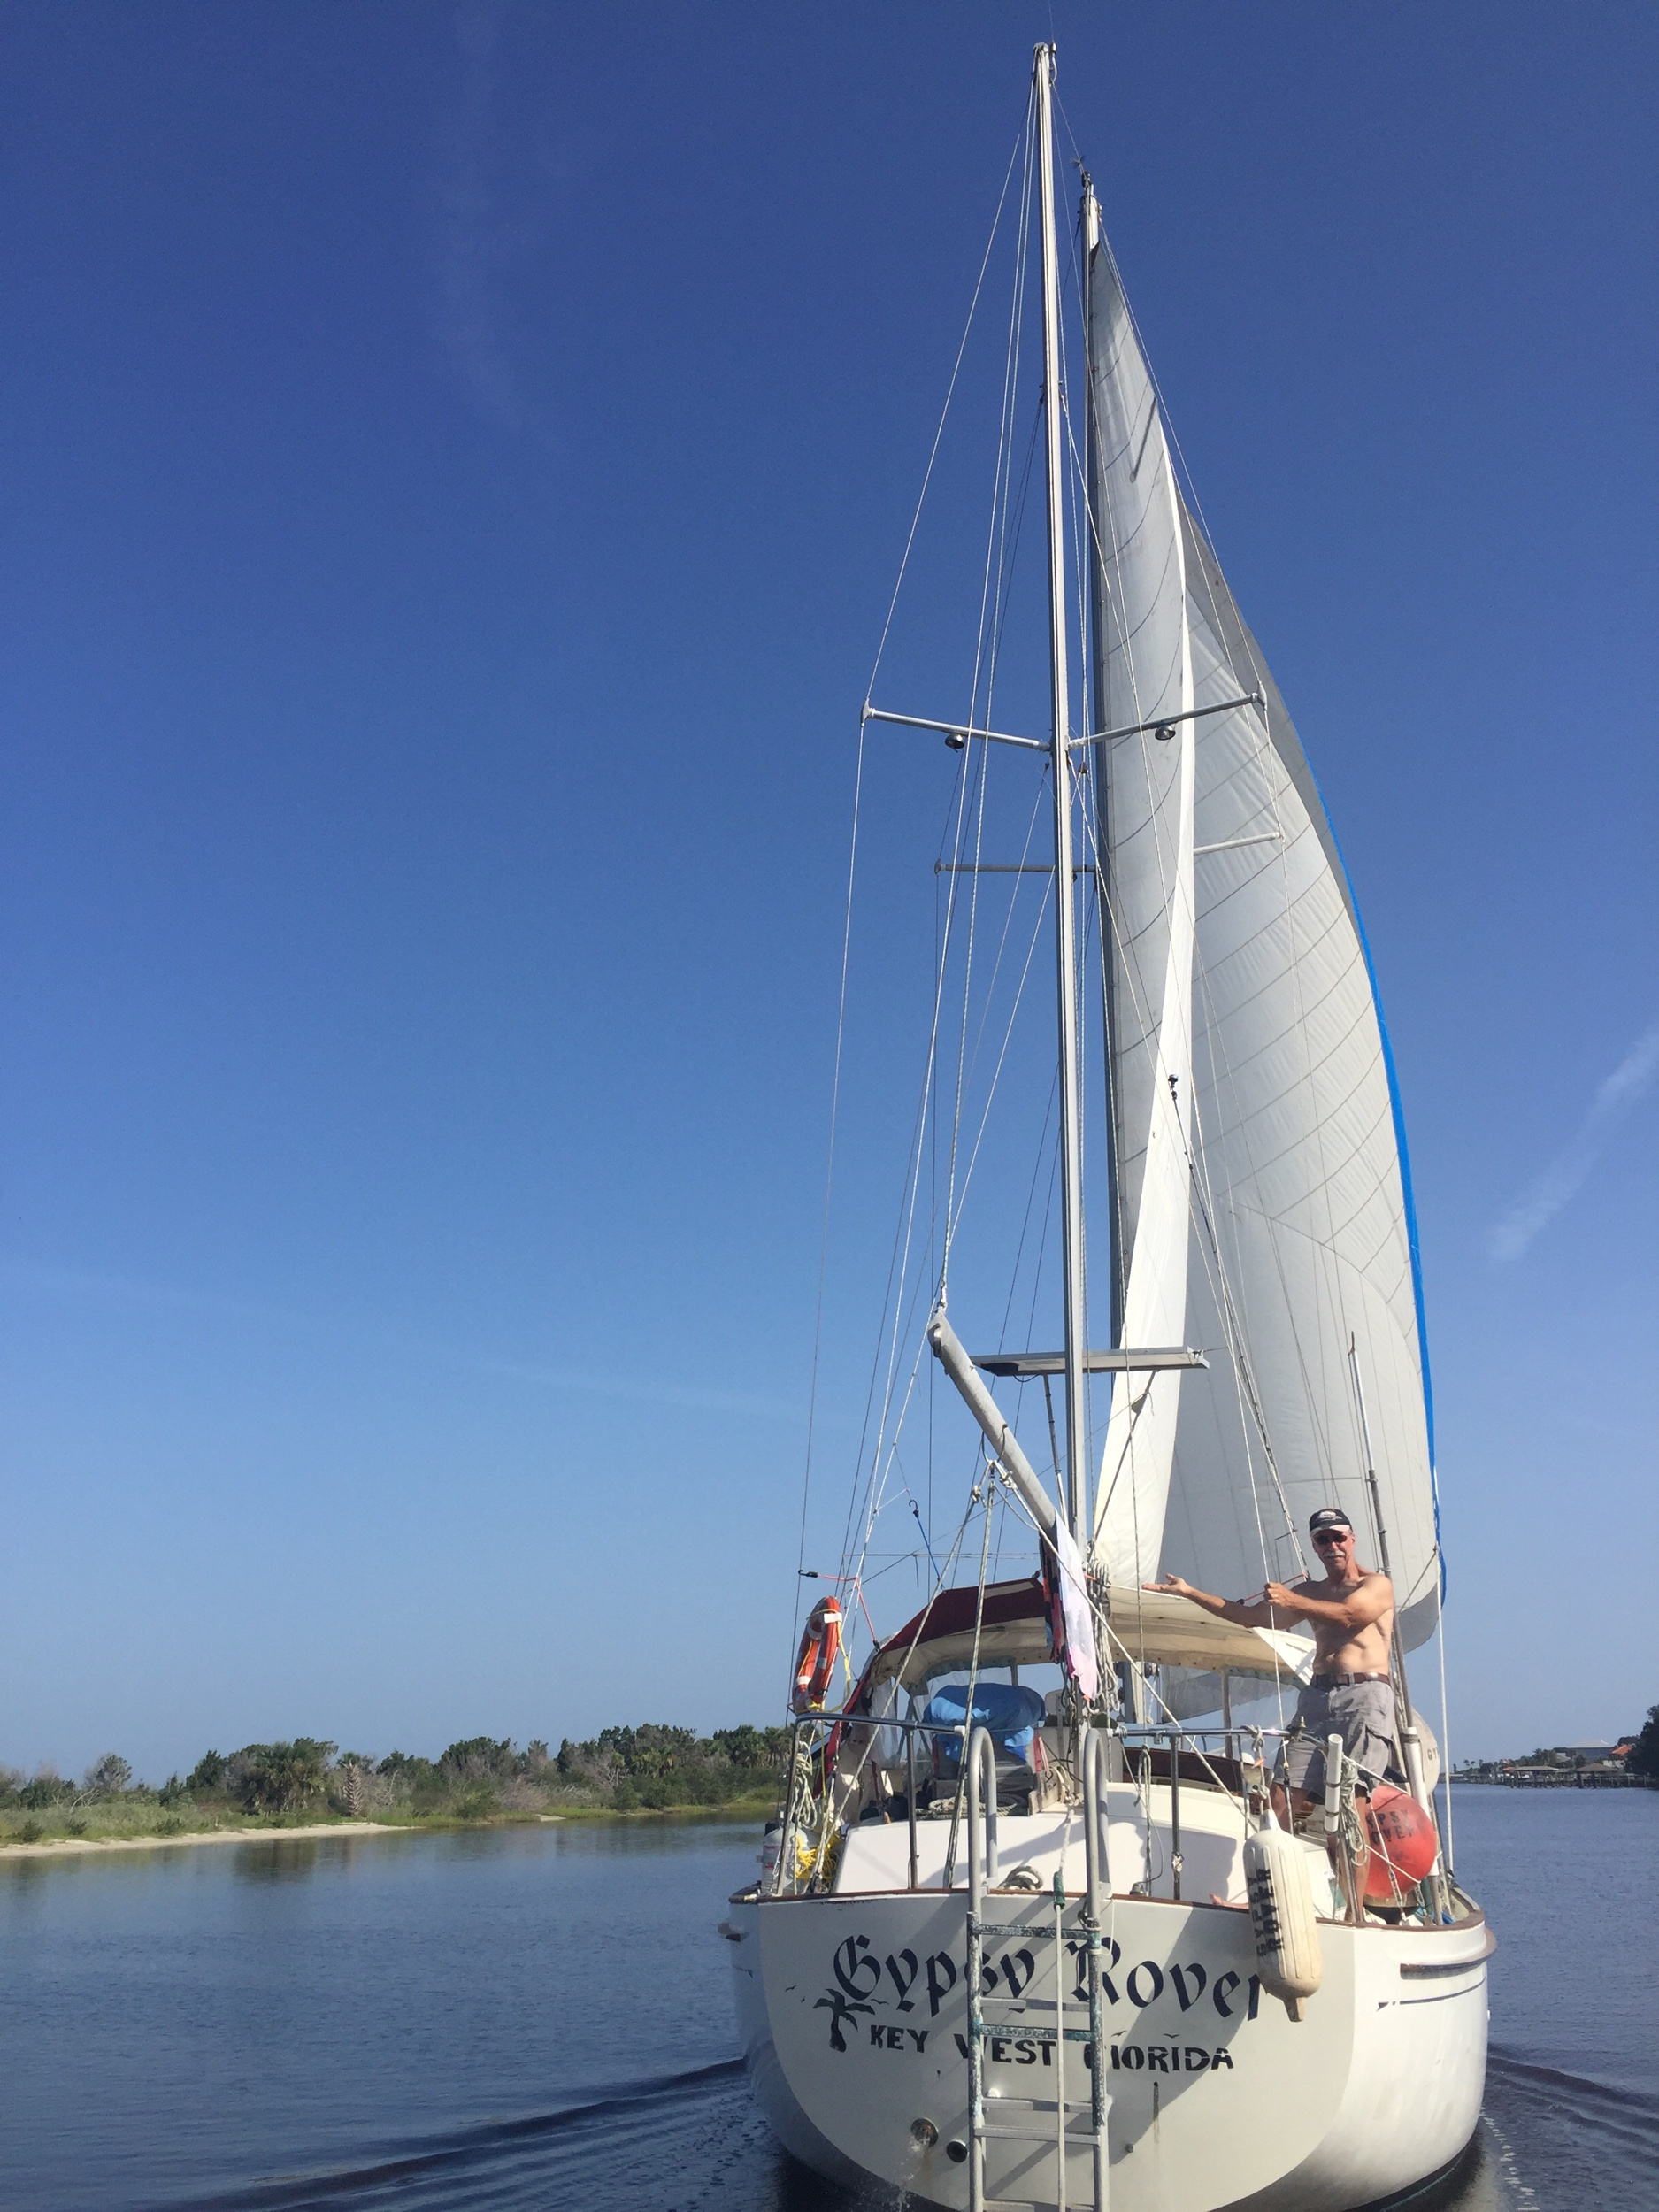 First mate, Grandpa Mike, near Merritt Island, FL trimming some sails while traveling north on the ICW.